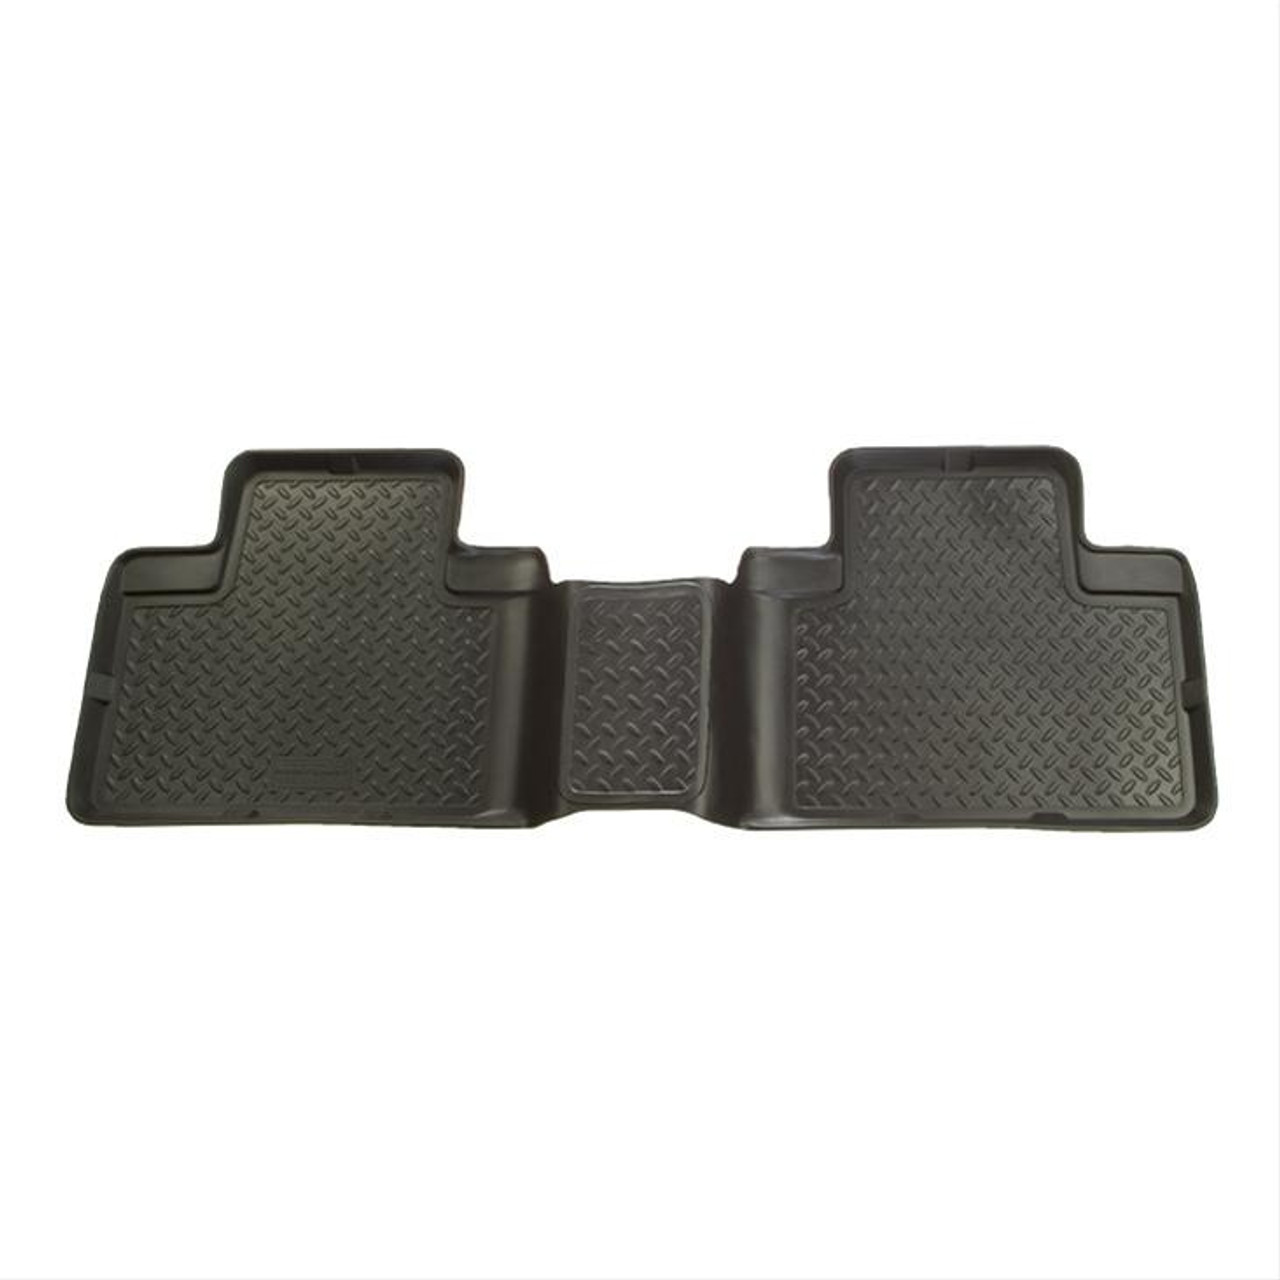 00-05 EXCURSION 3RD SEAT FLOOR LINER BLACK